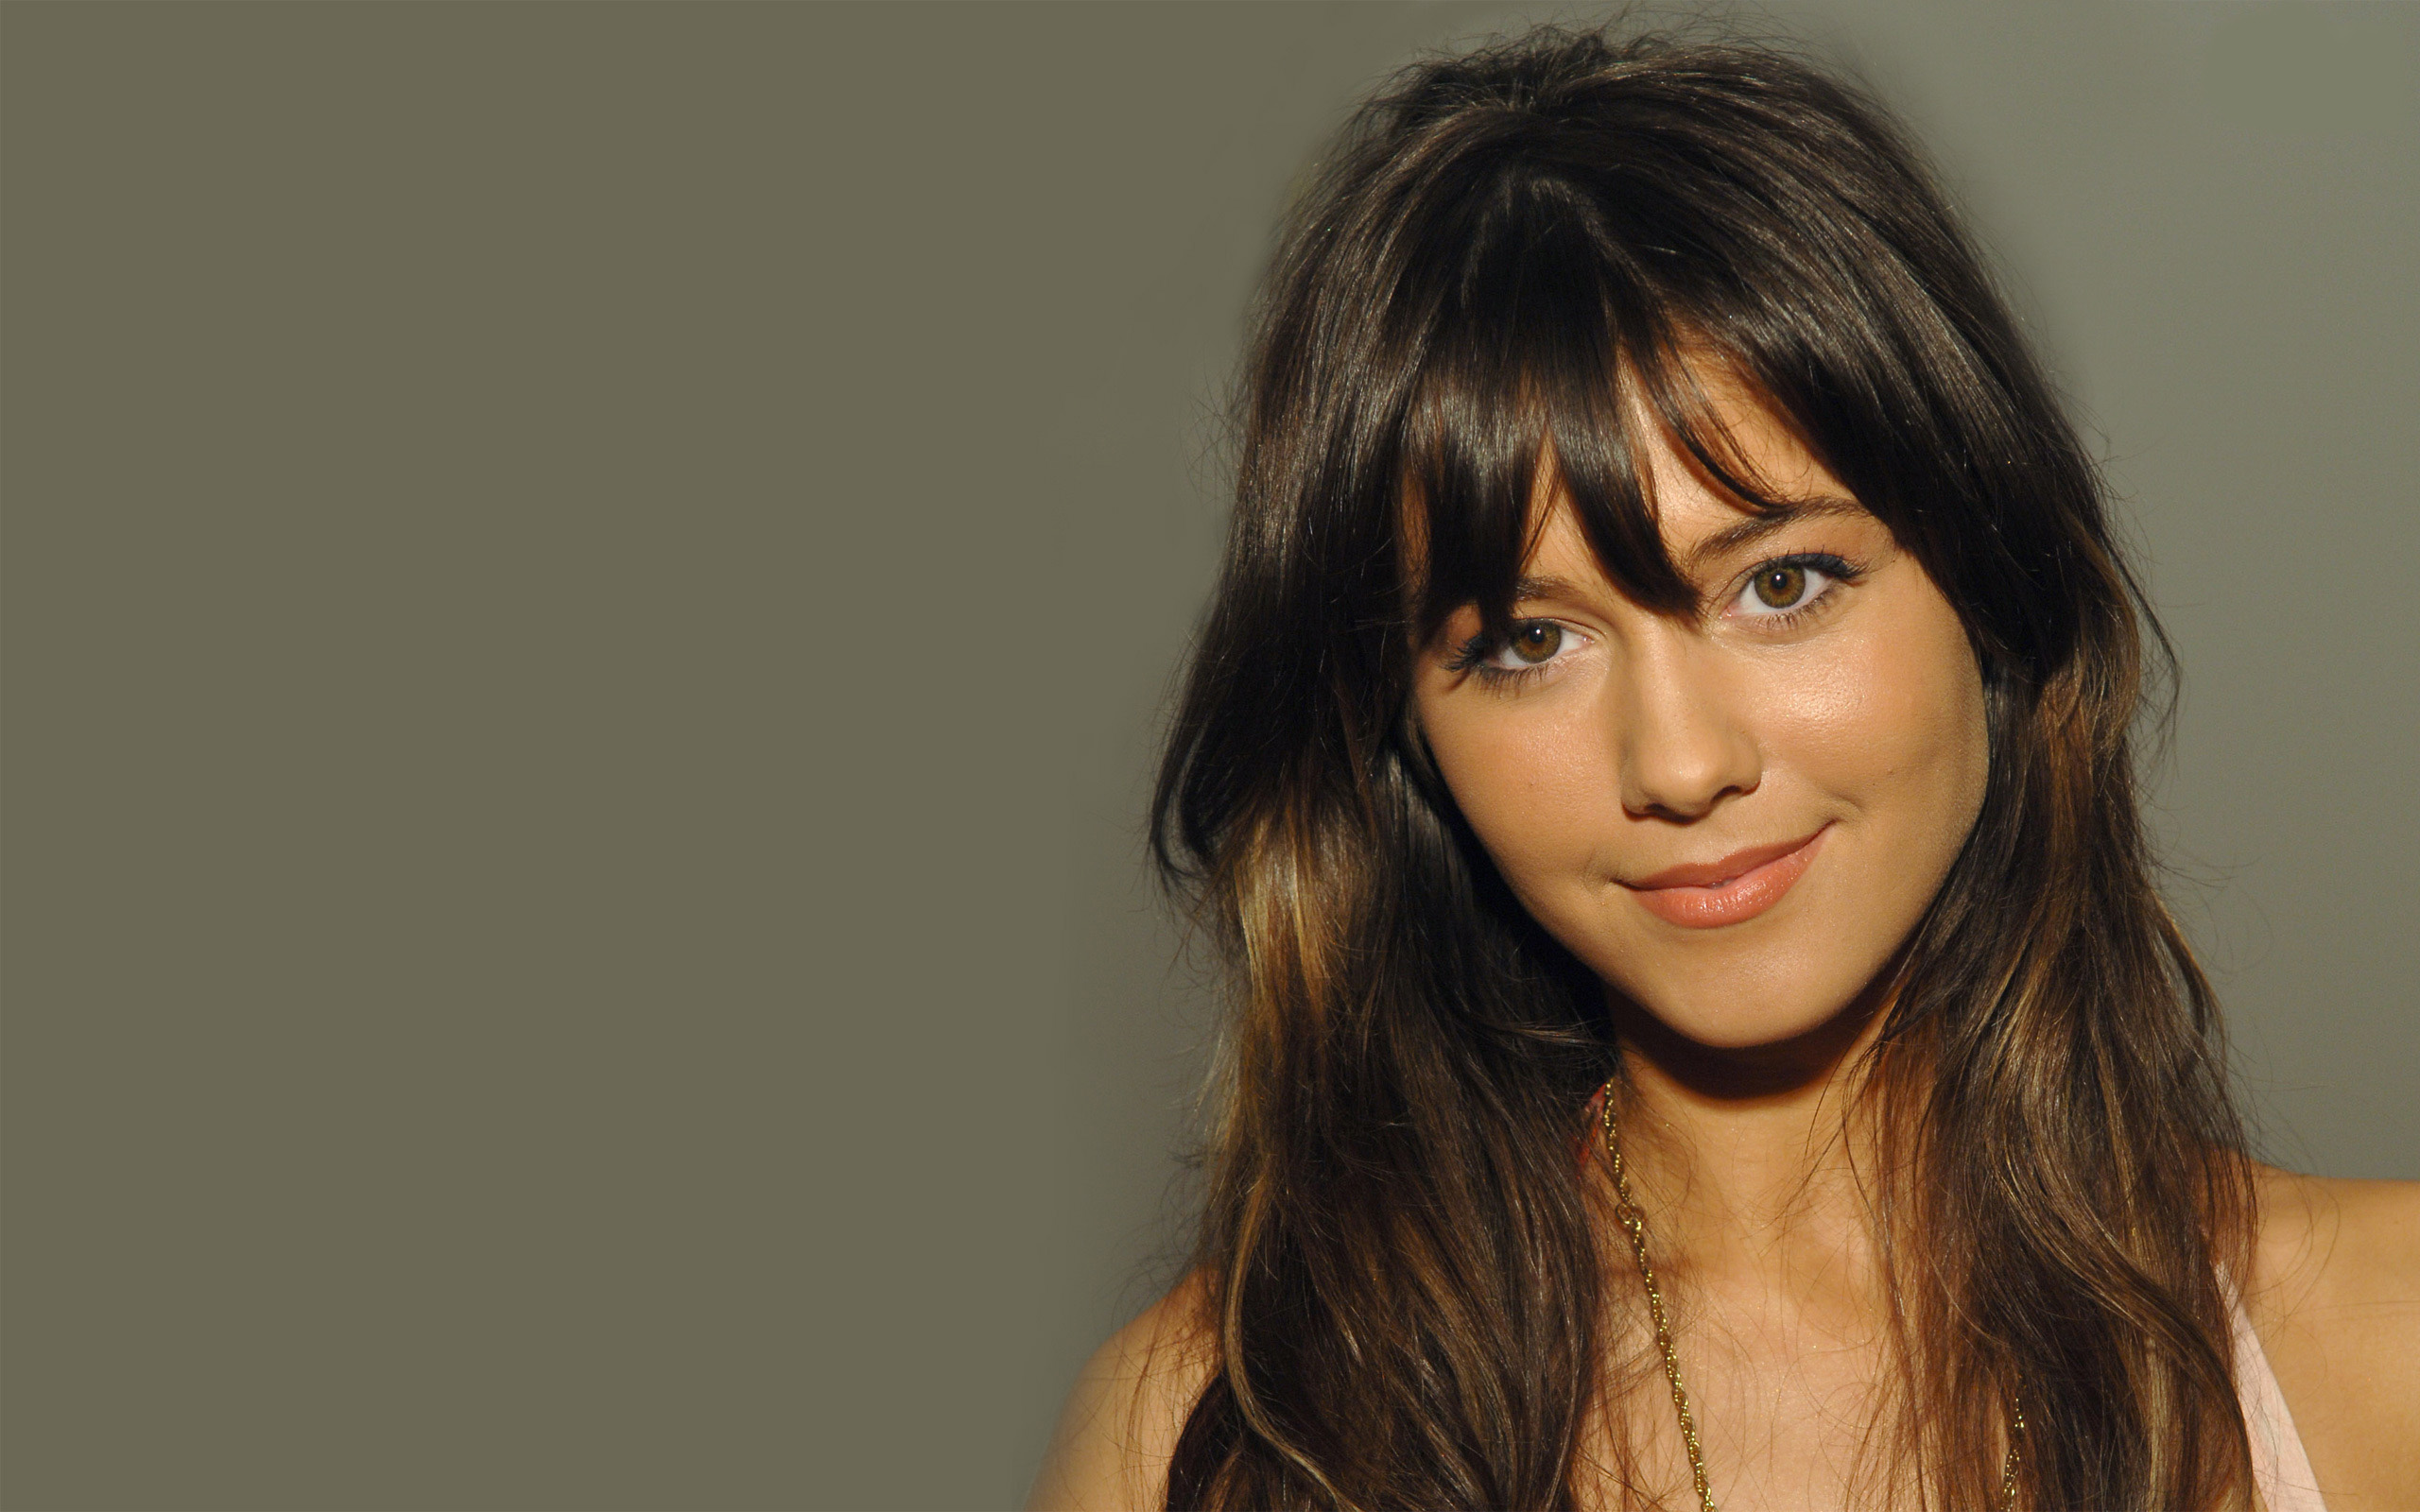 mary elizabeth winstead hd wallpaper | background image | 2560x1600